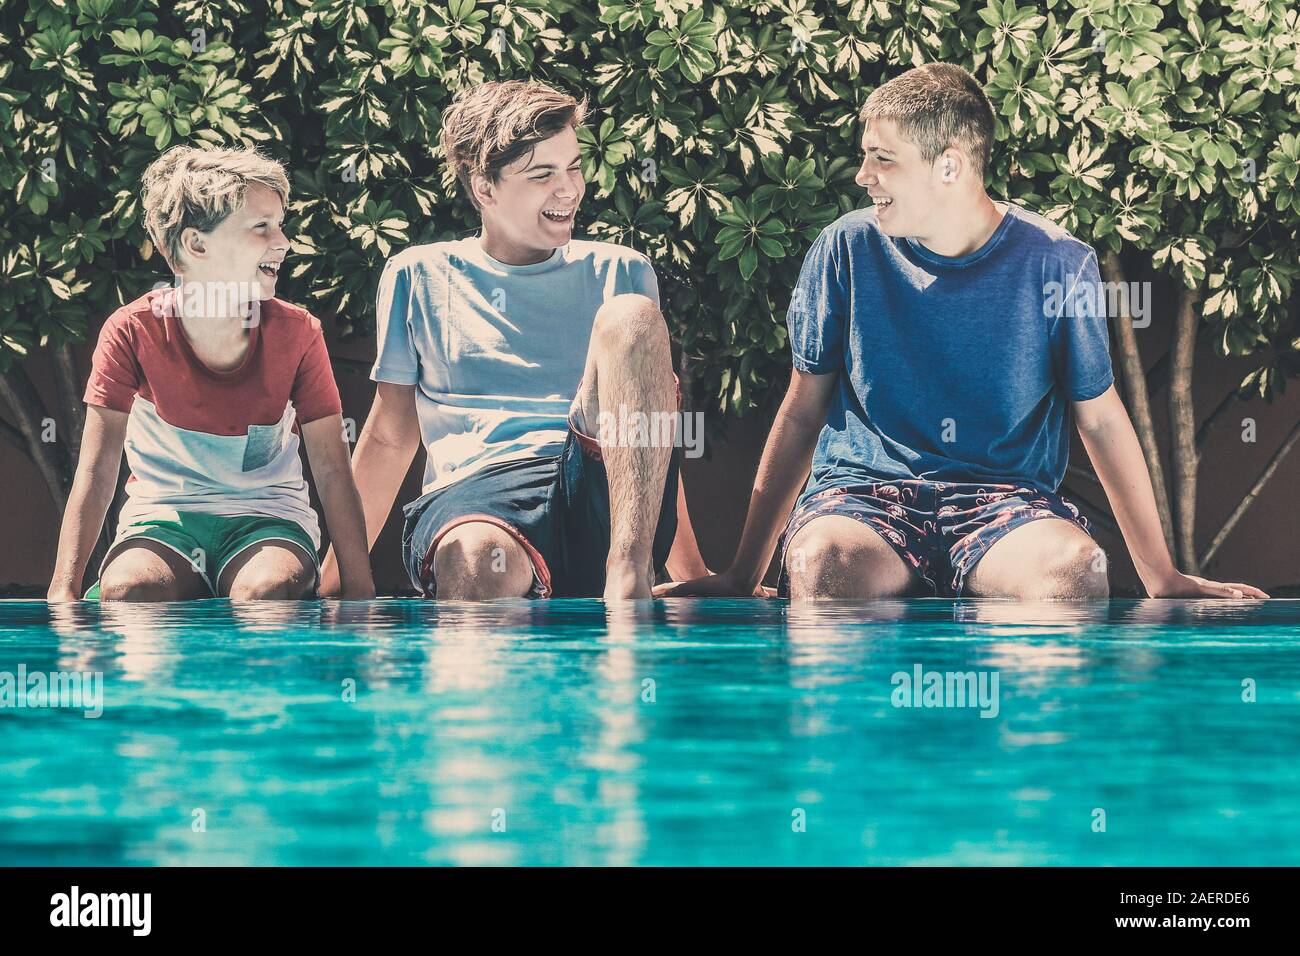 Young male enjoying days off of school relaxing in the swimming pool. Smiling teenagers sitting on the edge of the pool. Happy people enjoy summer Stock Photo